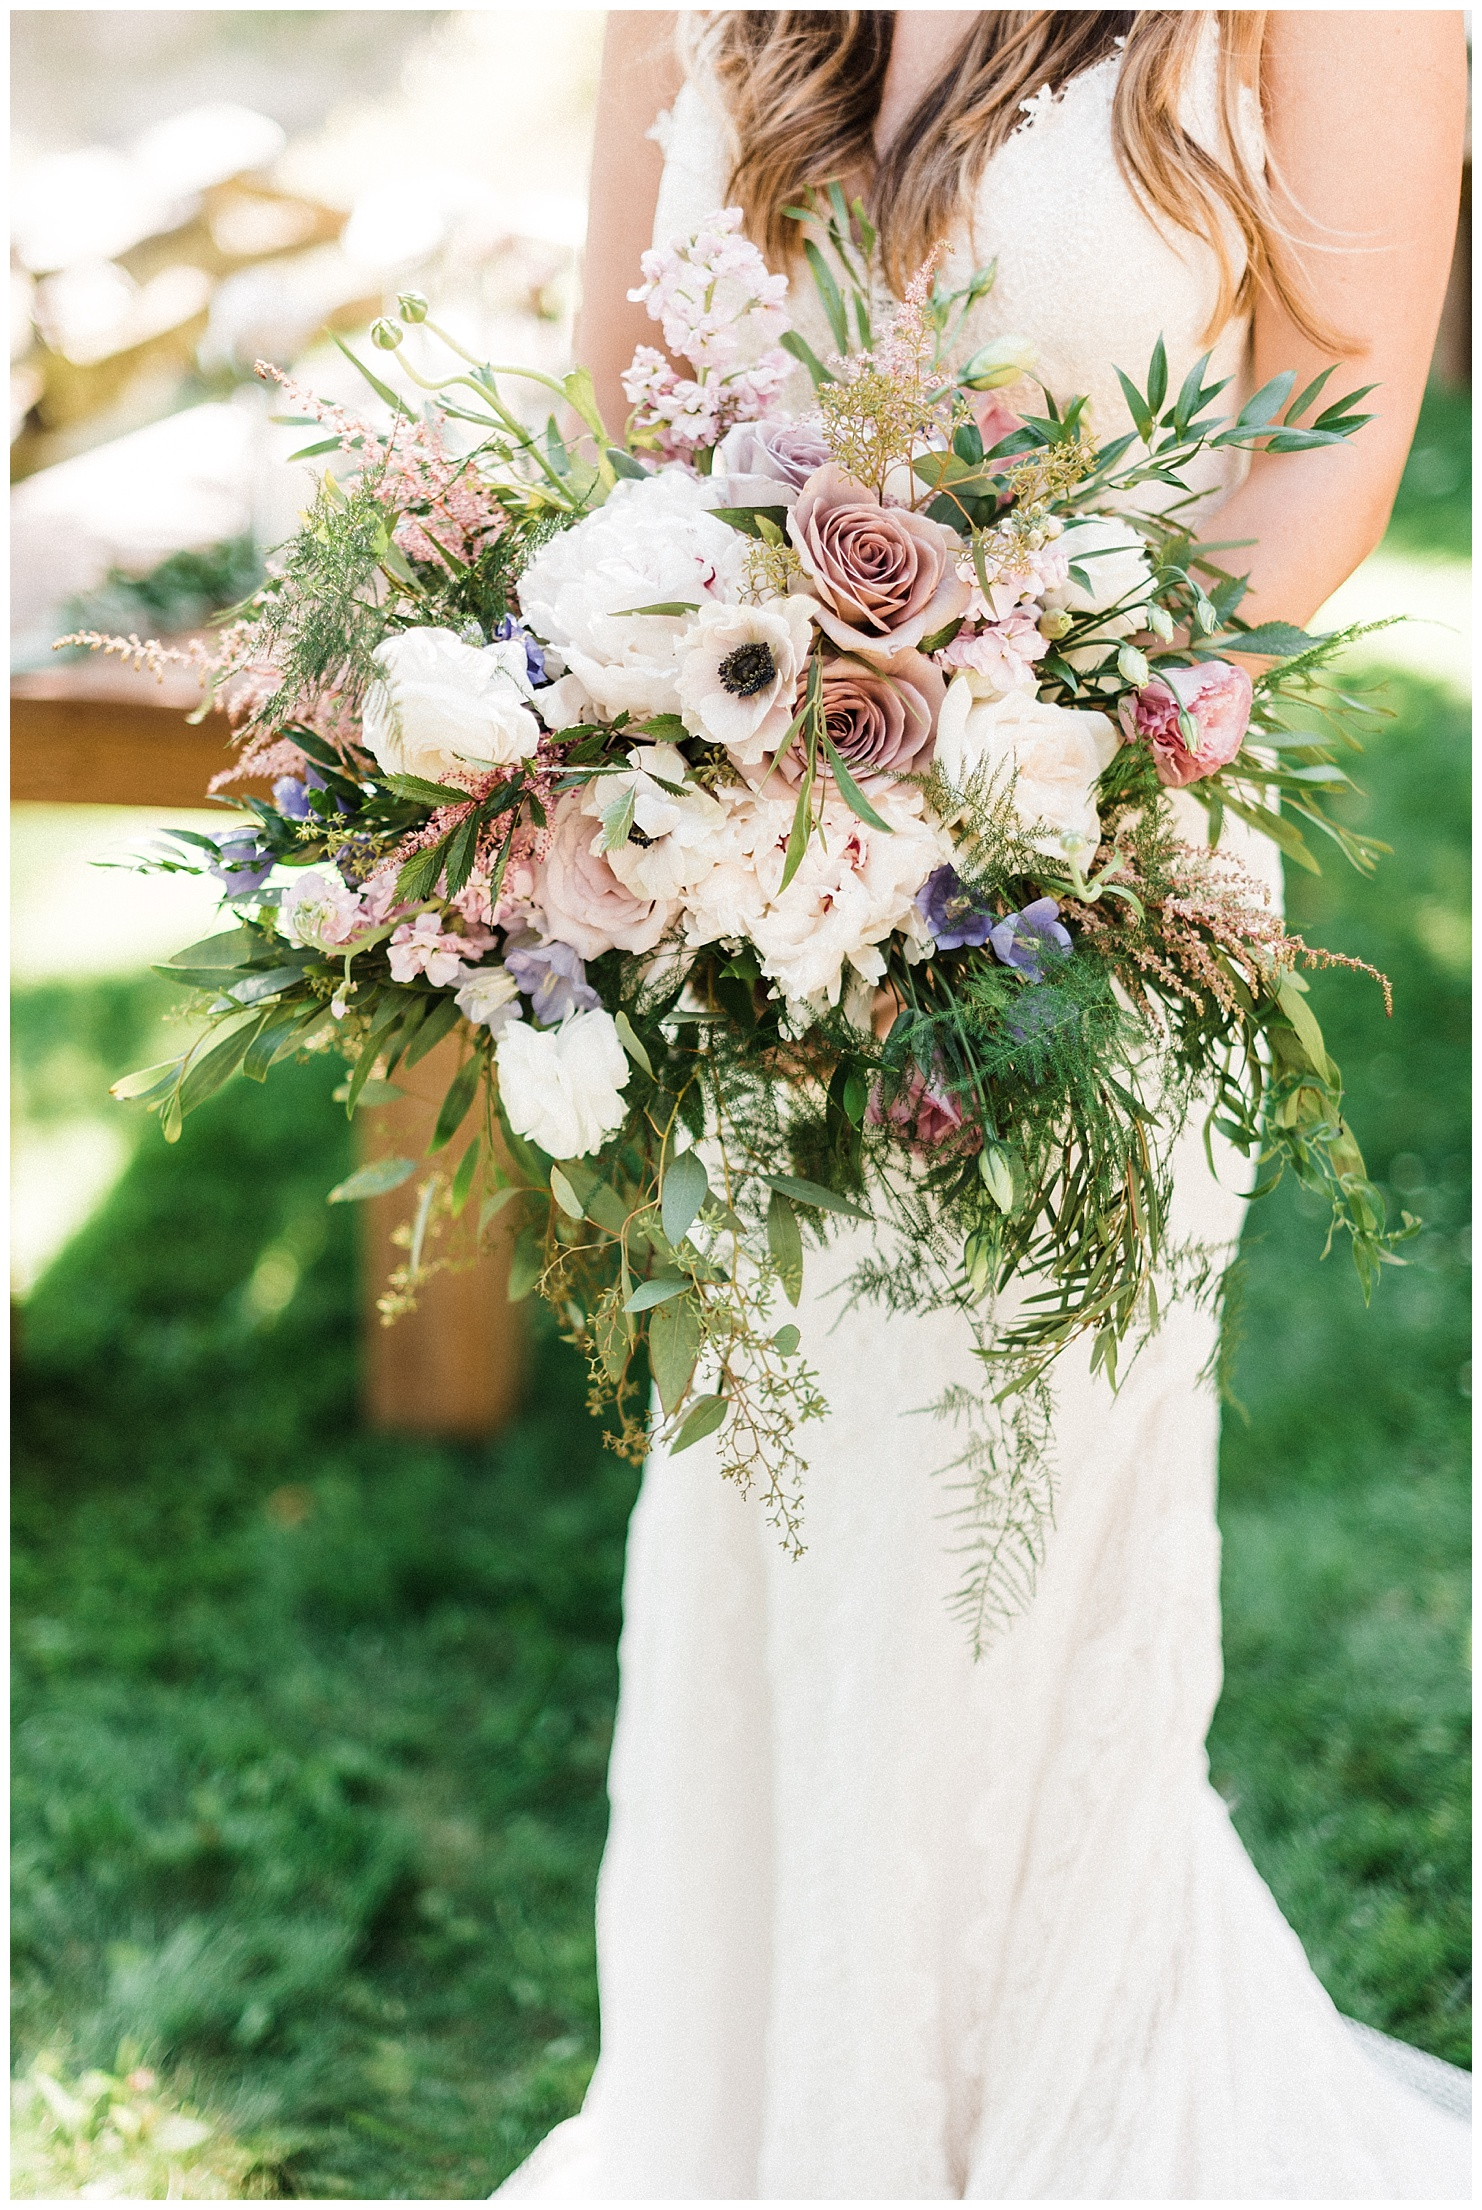 Photo of a bride holding a large bouquet by Forthright Photo